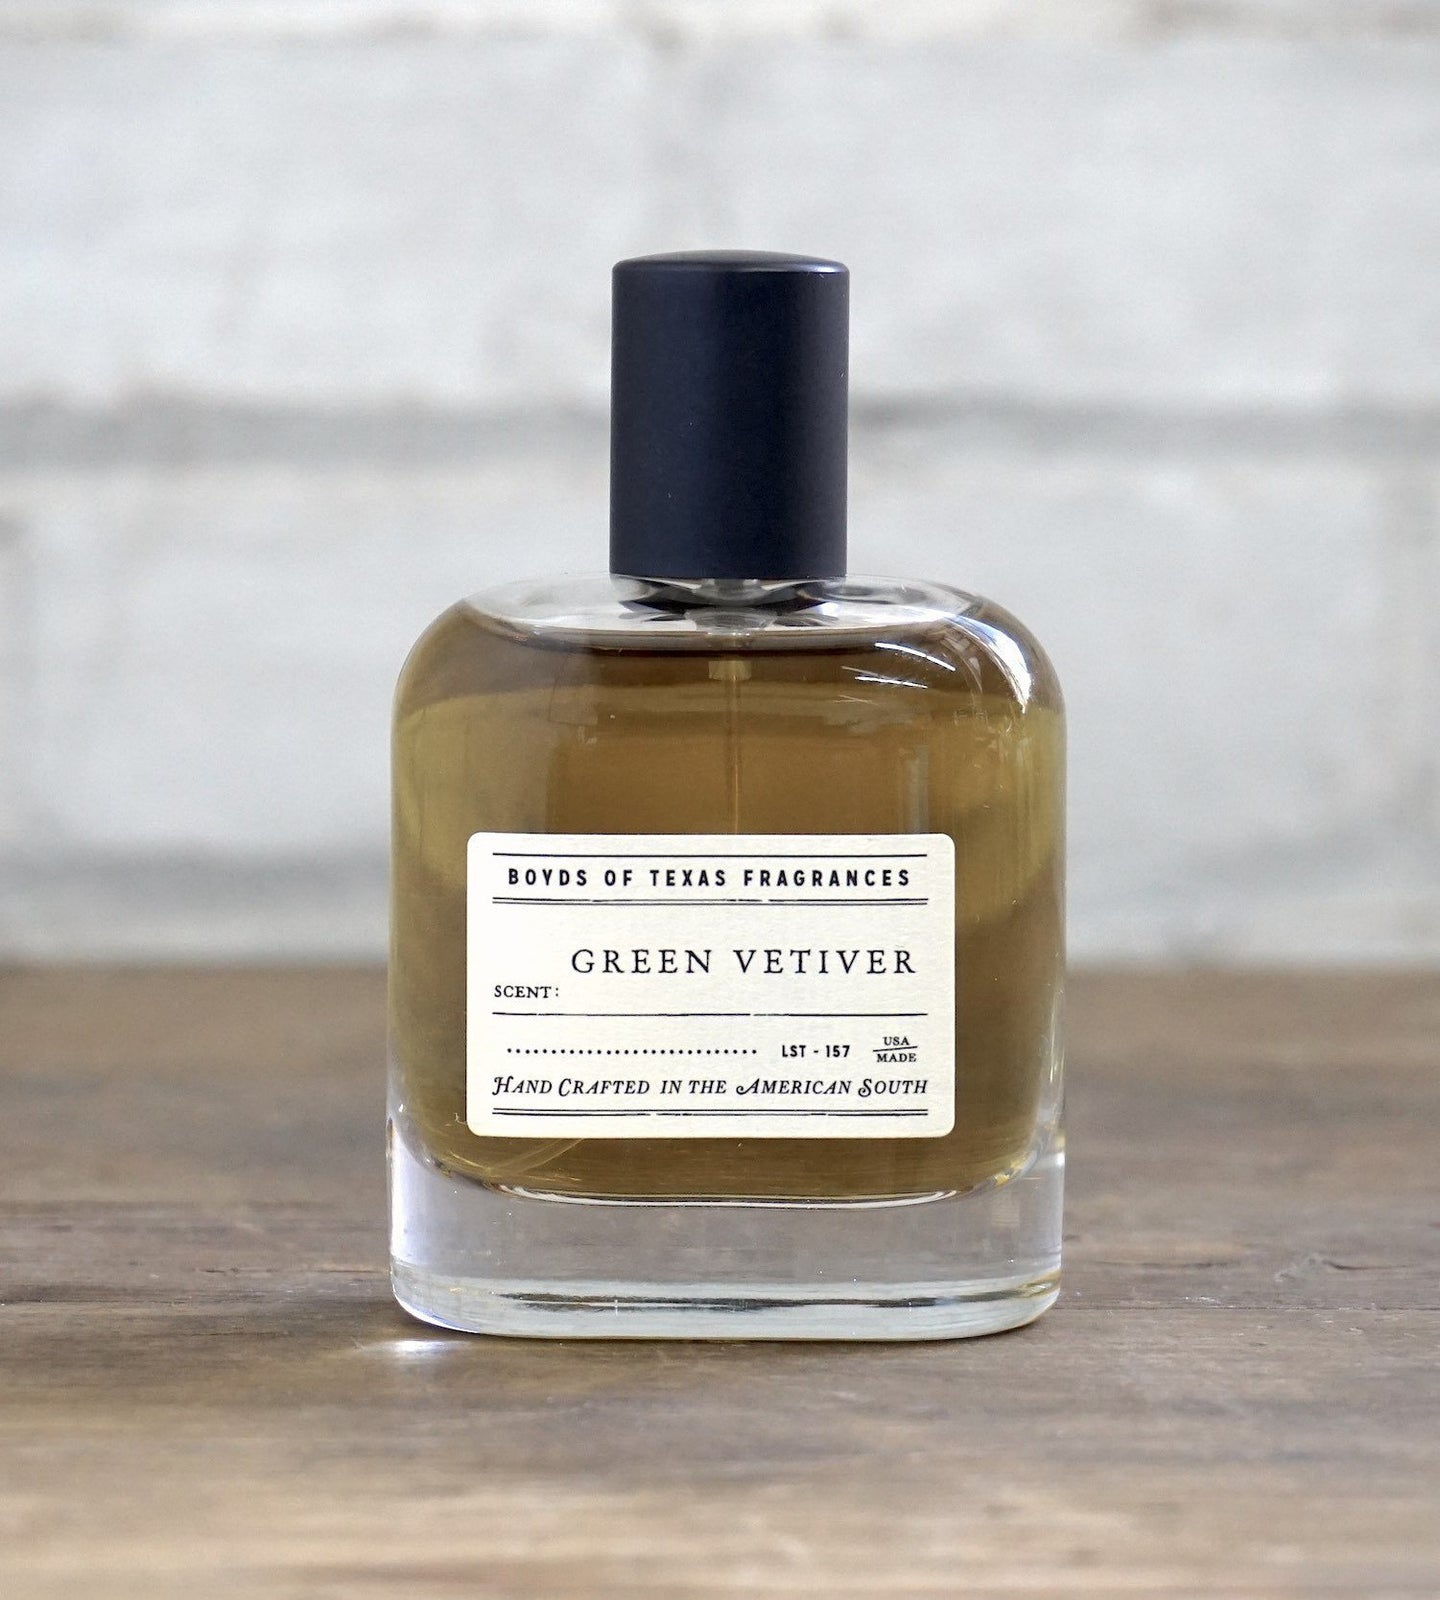 Boyd's of Texas Fragrances ACCESSORIES - GROOMING - COLONGE Boyd's of Texas Fragrances, Green Vetiver - Eau de Parfum